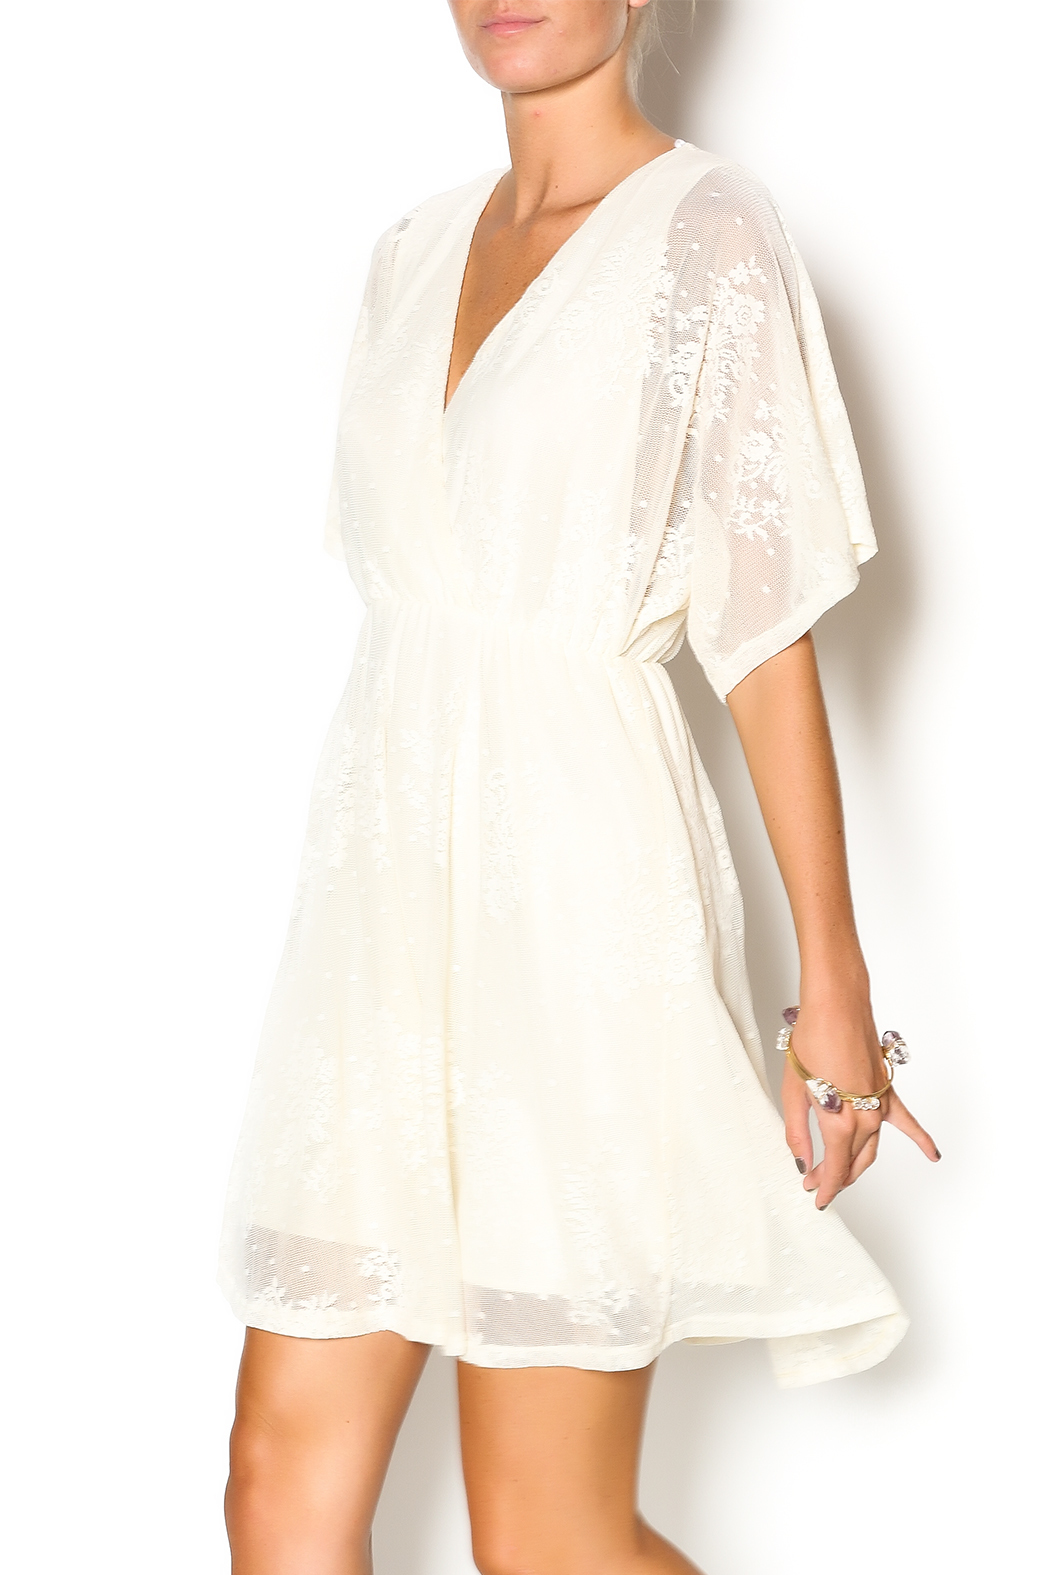 Wish Collection Cross-Front Lace Dress - Main Image